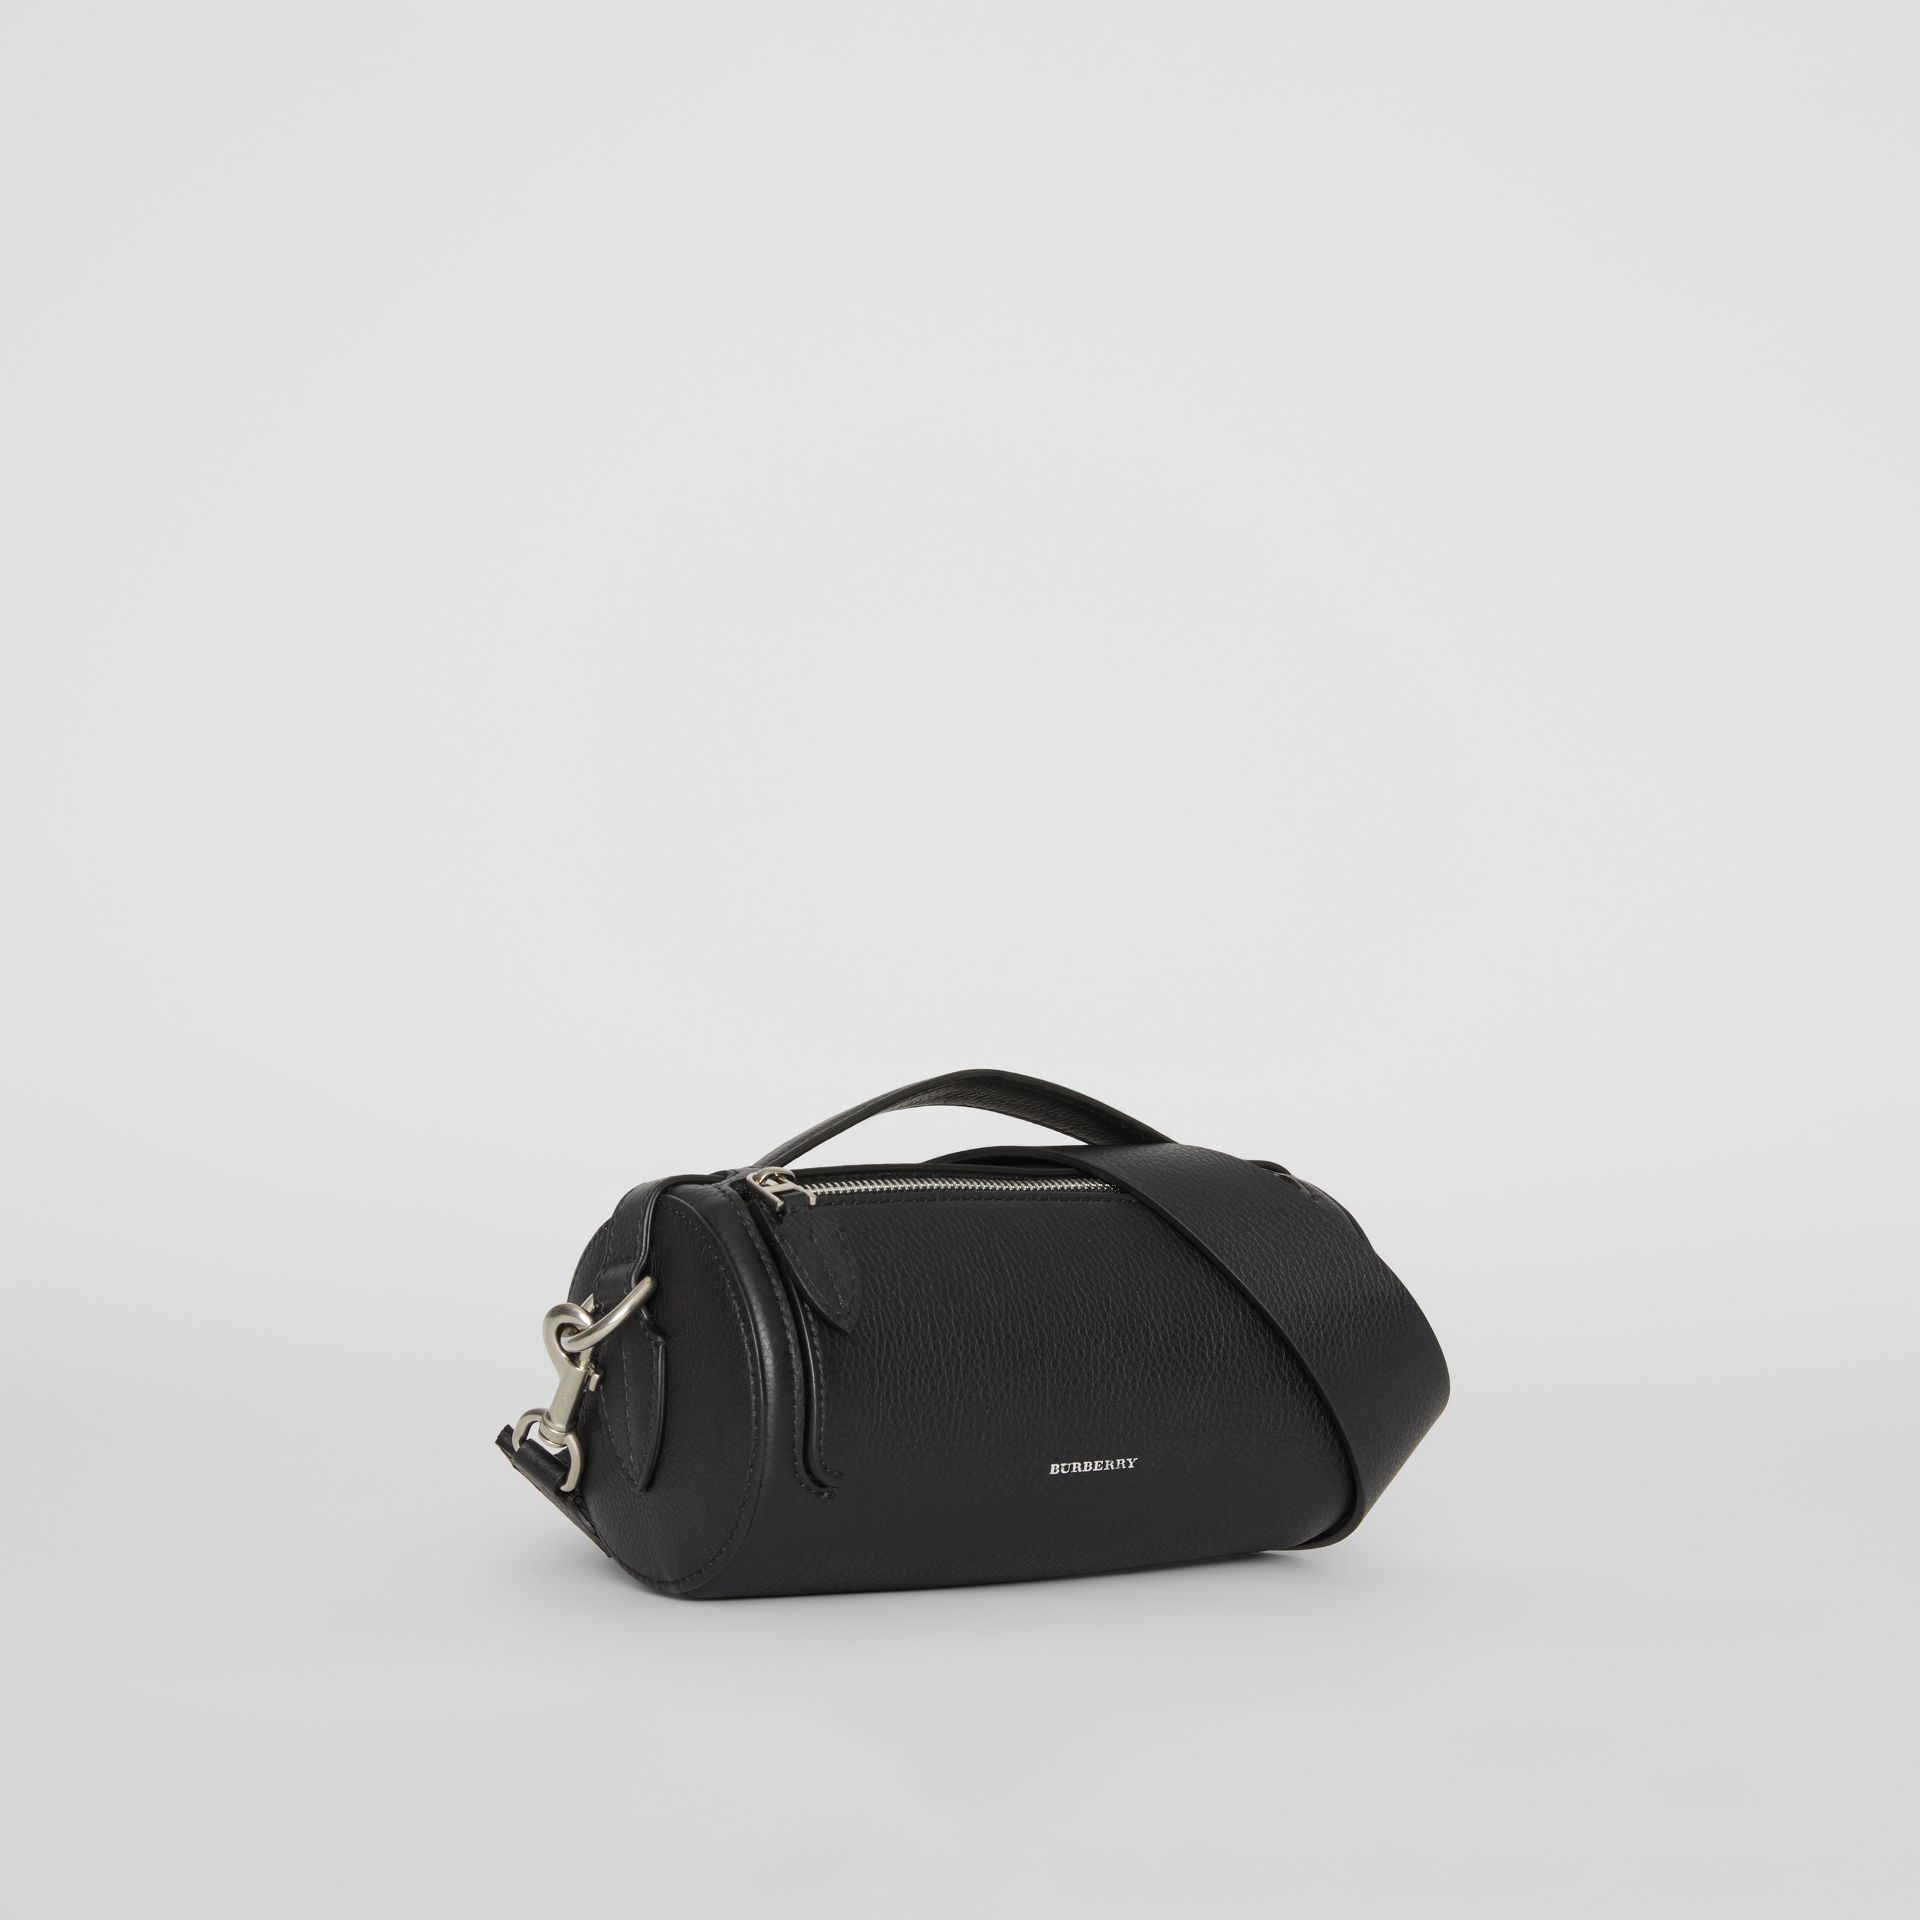 Sac The Barrel en cuir (Noir) - Femme | Burberry - photo de la galerie 6